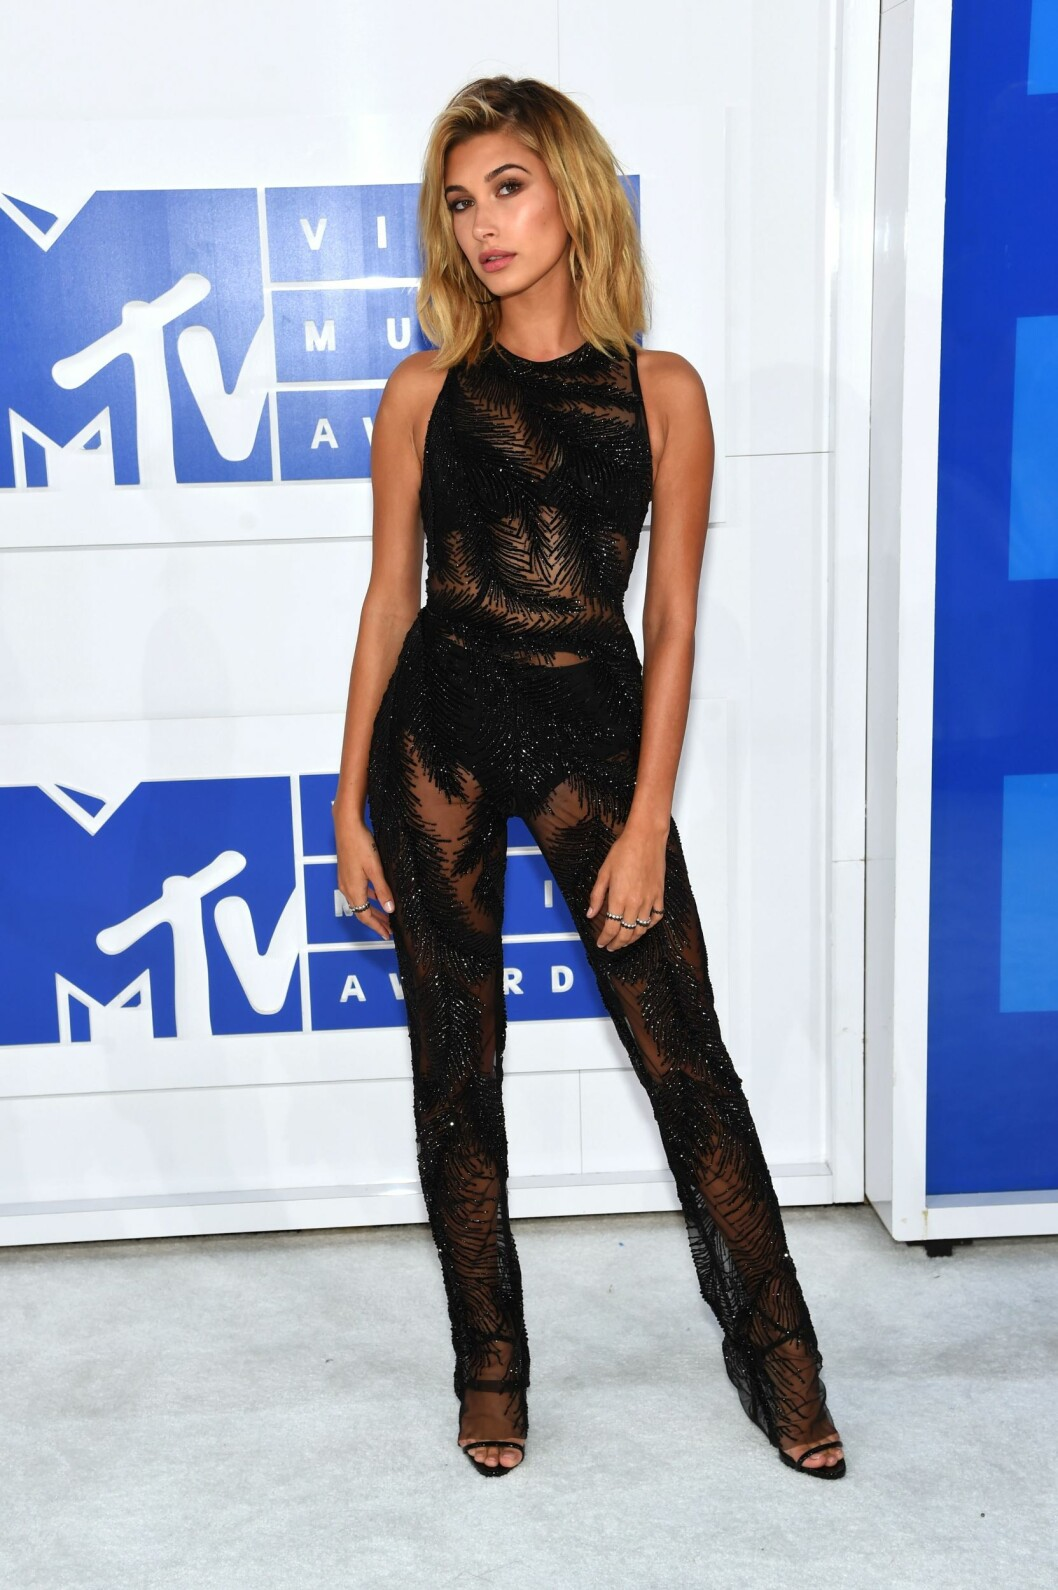 NEW YORK, NY - AUGUST 28: Model Hailey Baldwin attends the 2016 MTV Video Music Awards at Madison Square Garden on August 28, 2016 in New York City.   Jamie McCarthy/Getty Images/AFP == FOR NEWSPAPERS, INTERNET, TELCOS & TELEVISION USE ONLY == Foto: Afp